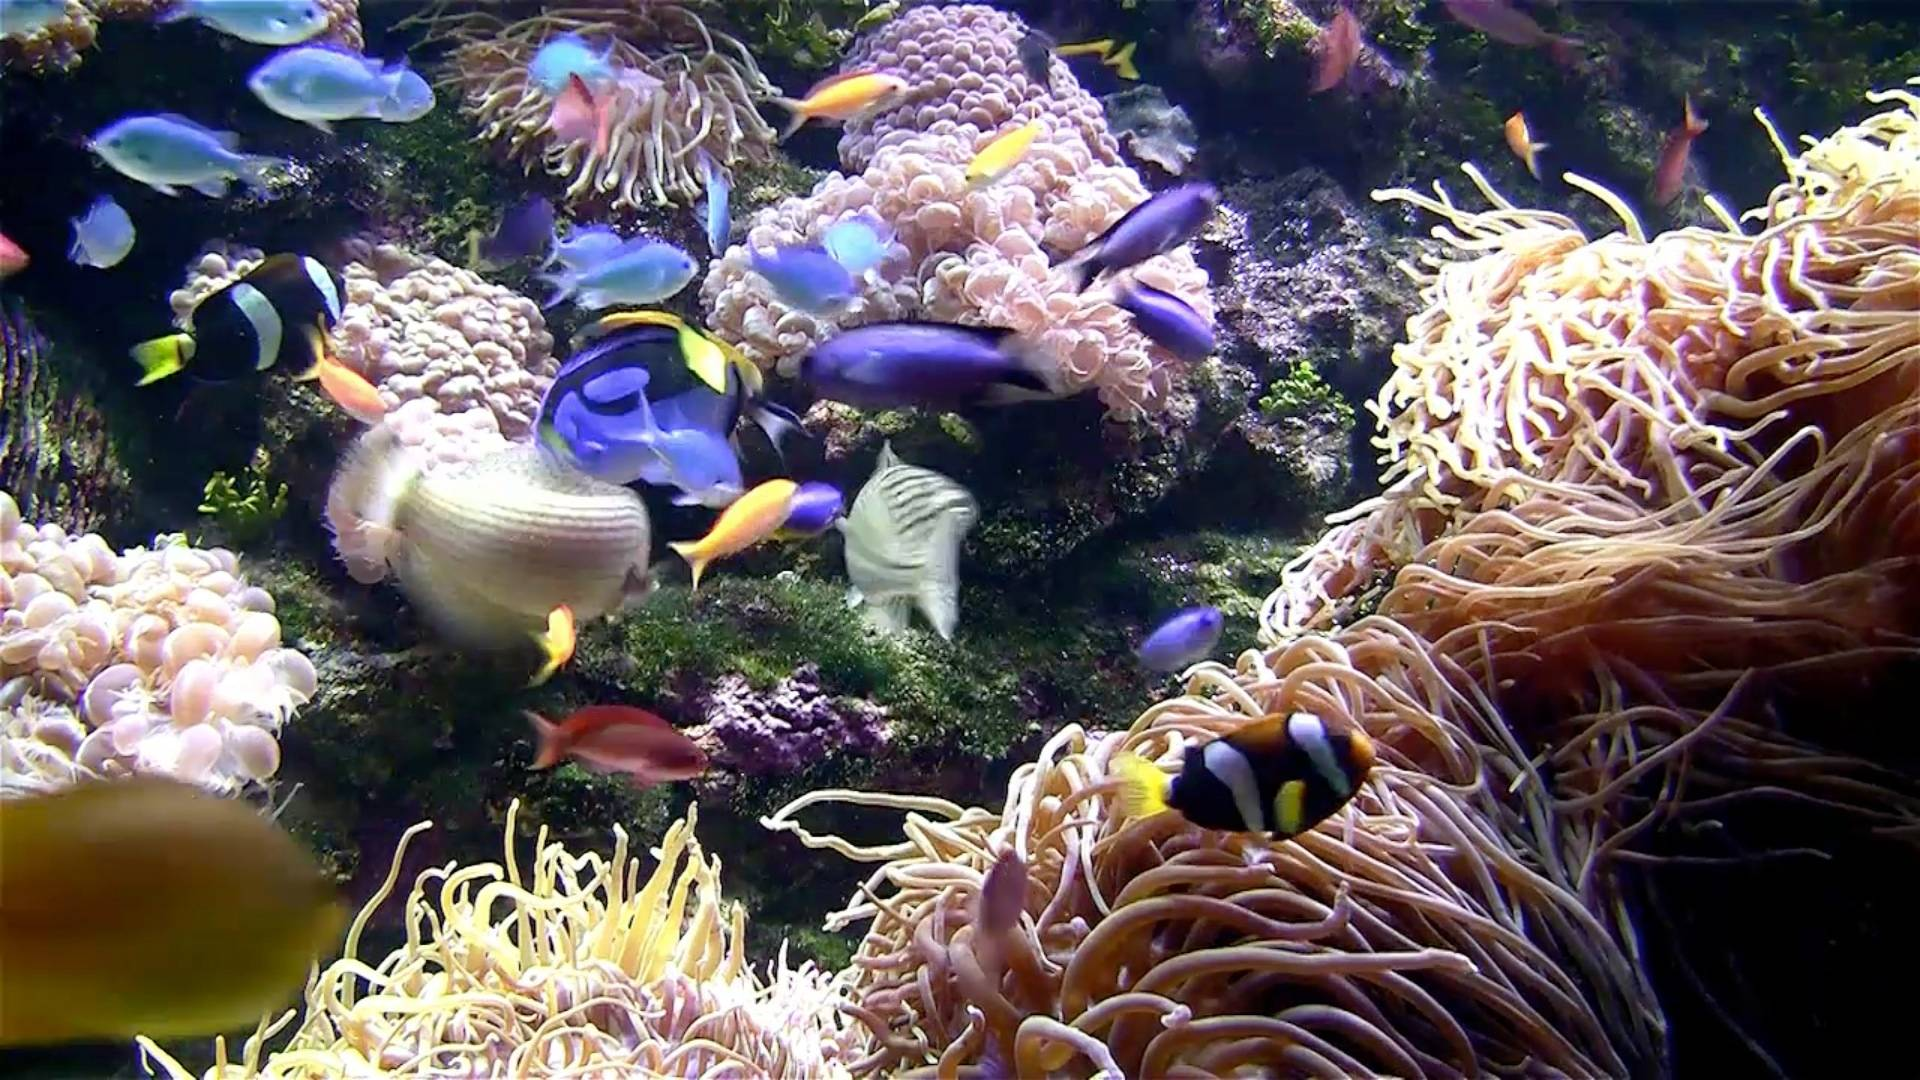 Coral Reef Background Fish Tank Coral reef background fishCoral Reef Fish Background